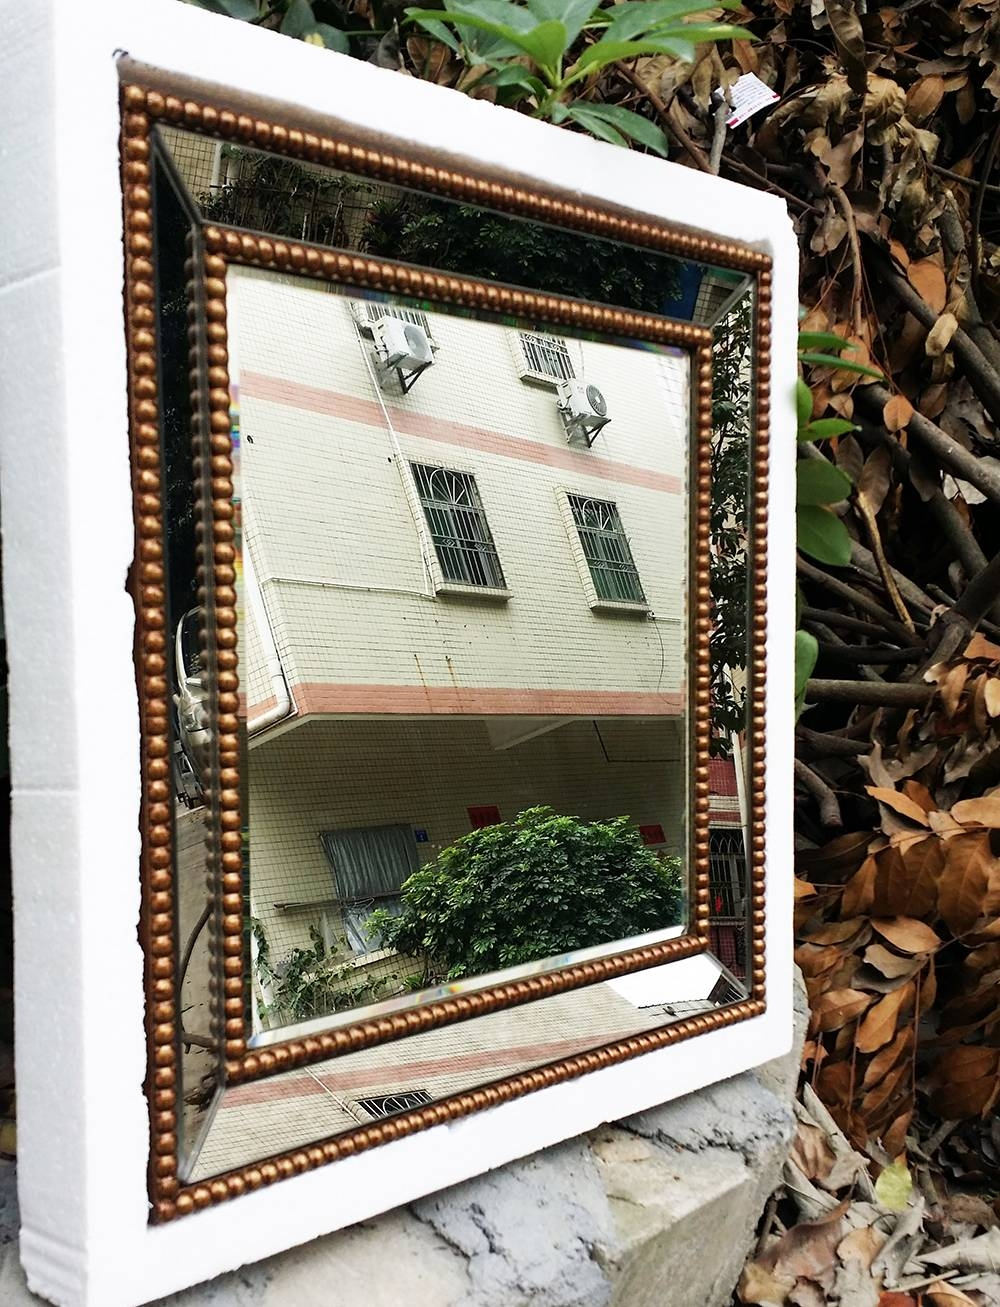 Mirrored Wall Decor Fretwork Square Wall Mirror Framed Wall Art With Regard To Current Fretwork Wall Art (View 18 of 25)